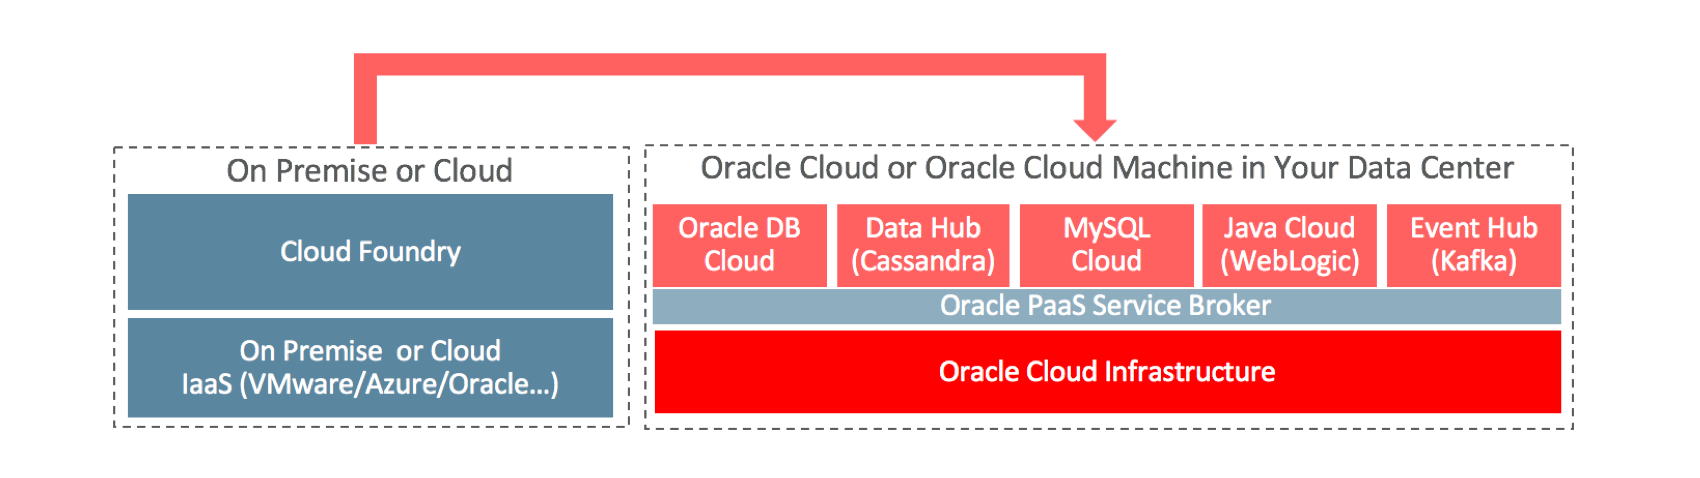 oracle-service-broker-cloud-foundry-for-Oracle-Cloud-Platform-PaaS